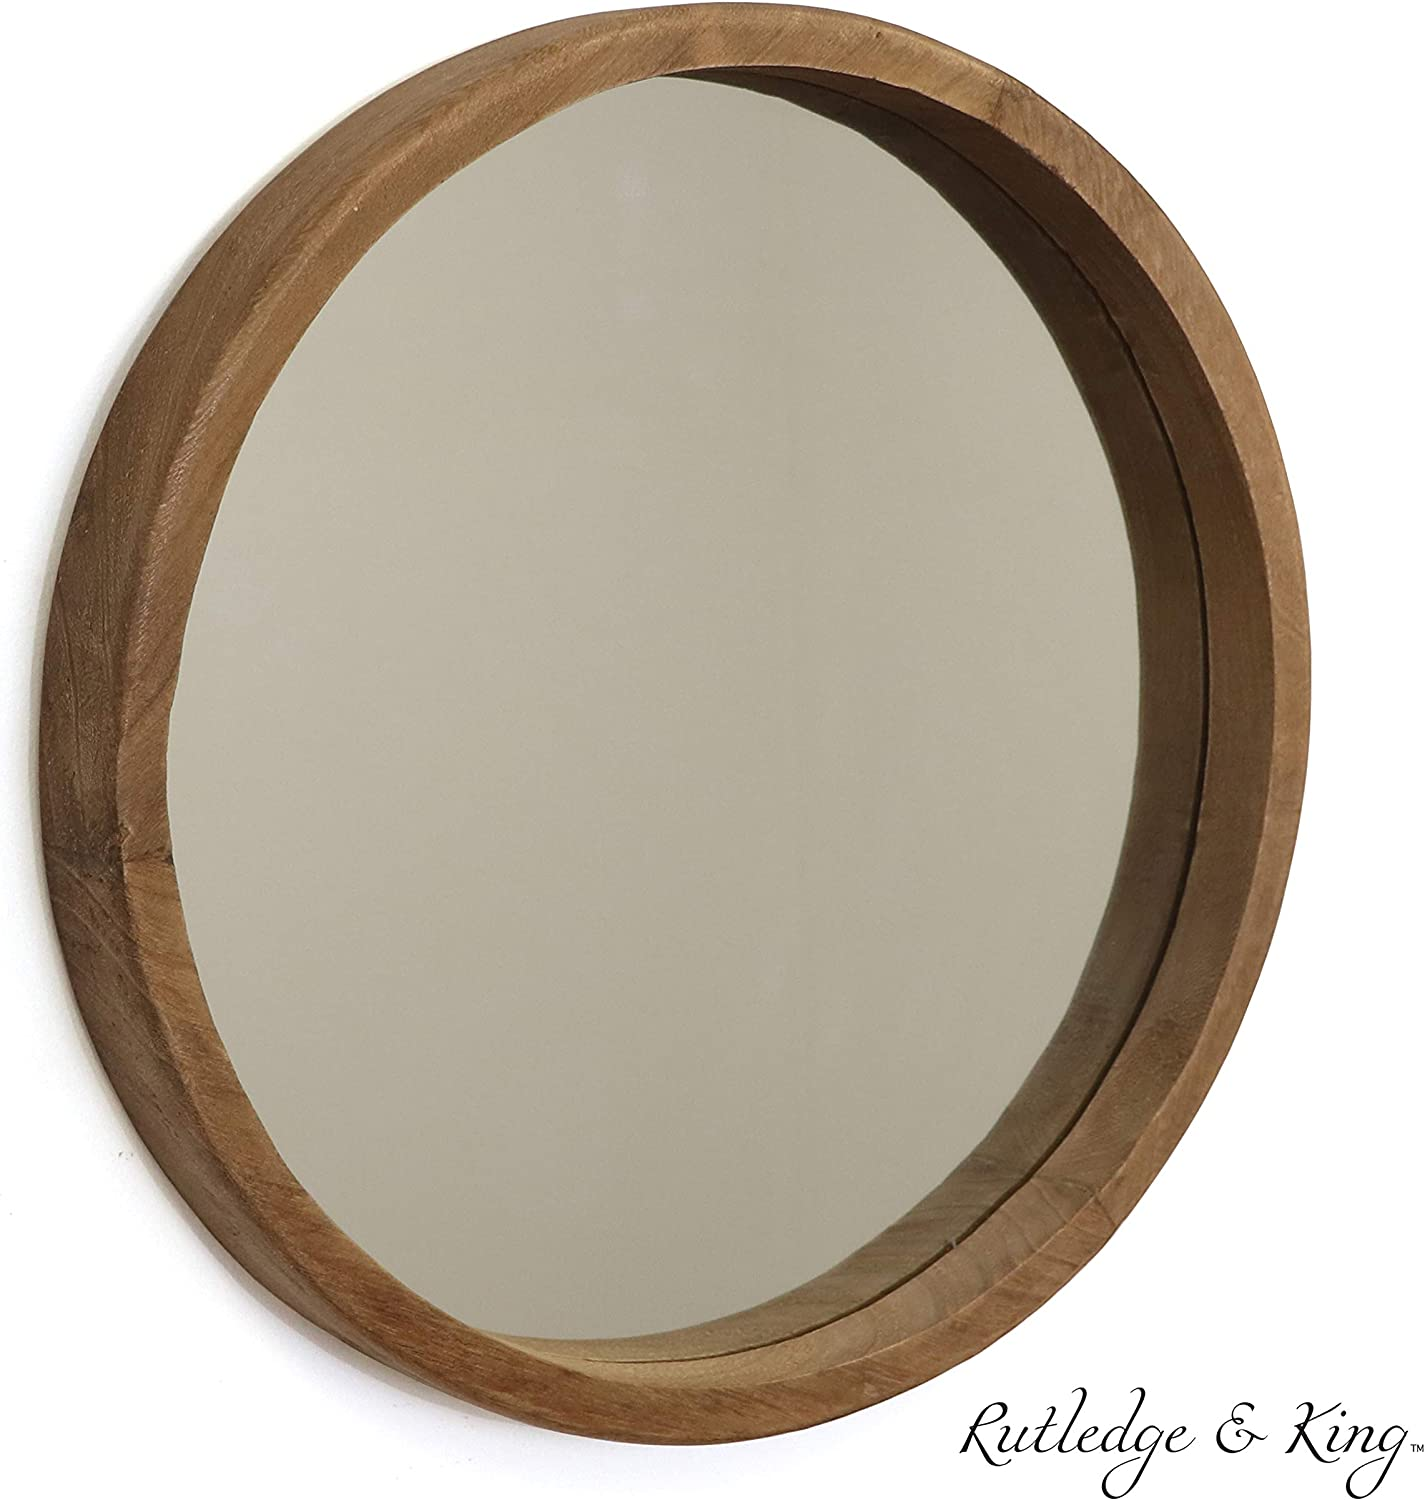 Rutledge & King Riverside Wooden Mirror – Wood Wall Mirror – Rustic Round Mirror – Large Decorative Circle Mirrors for…